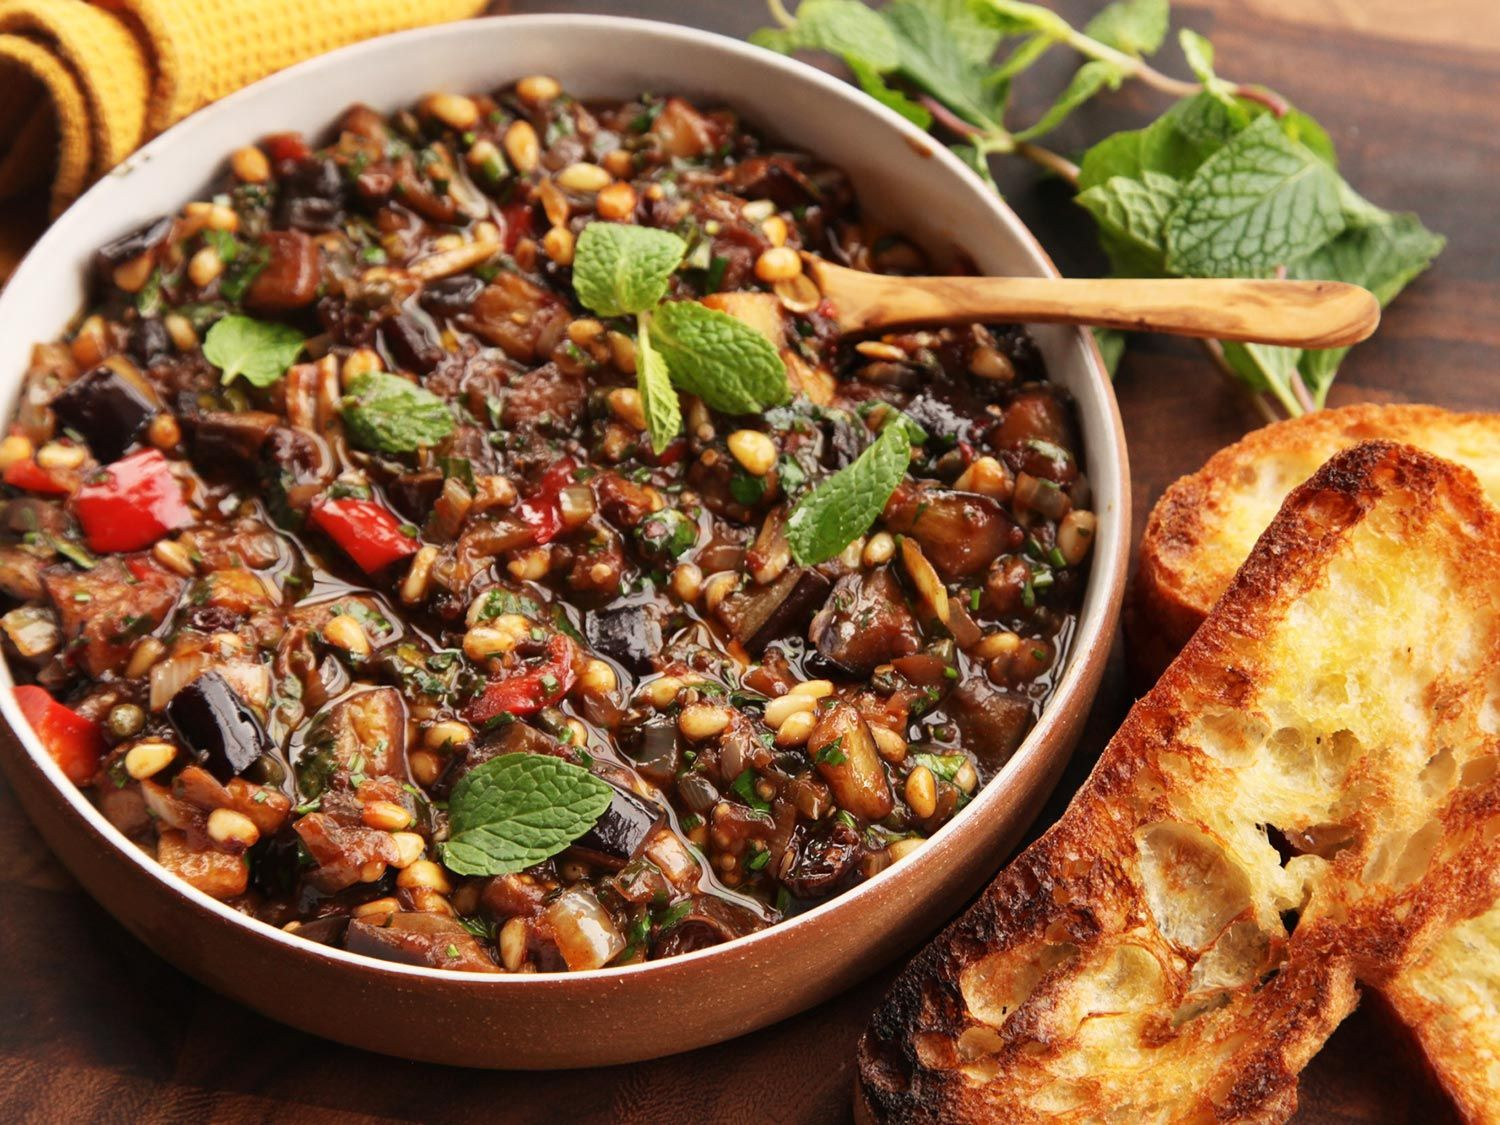 Caponata The Flavor Packed 30 Minute Sicilian Dish We Should All Be Eating More Of Caponata Recipe Eggplant Dishes Caponata